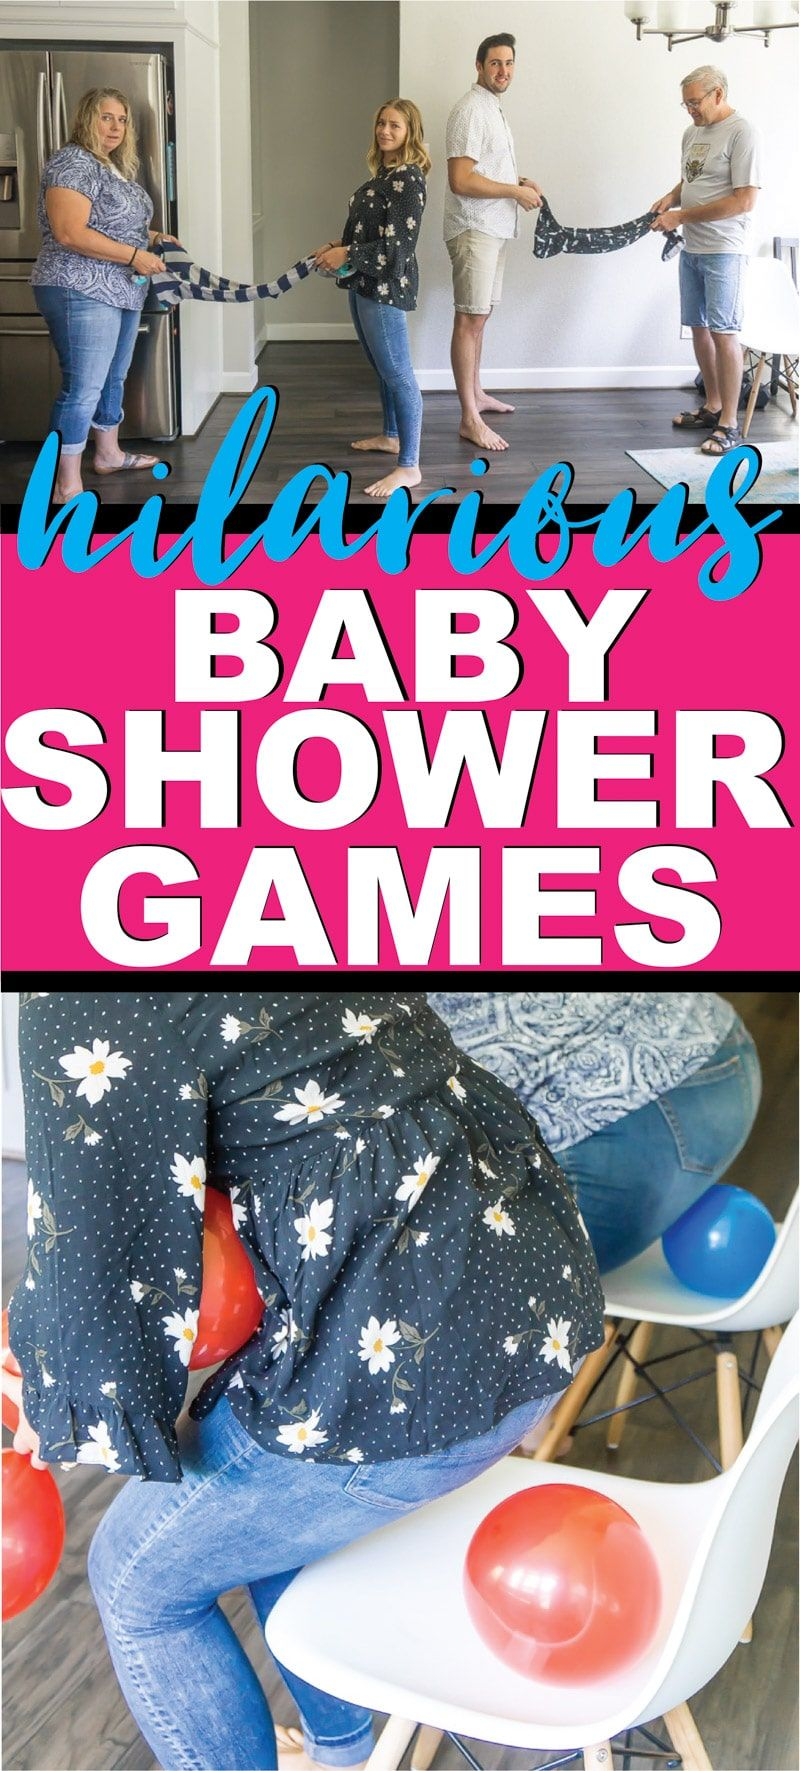 20 Super Fun Baby Shower Games - Play Party Plan